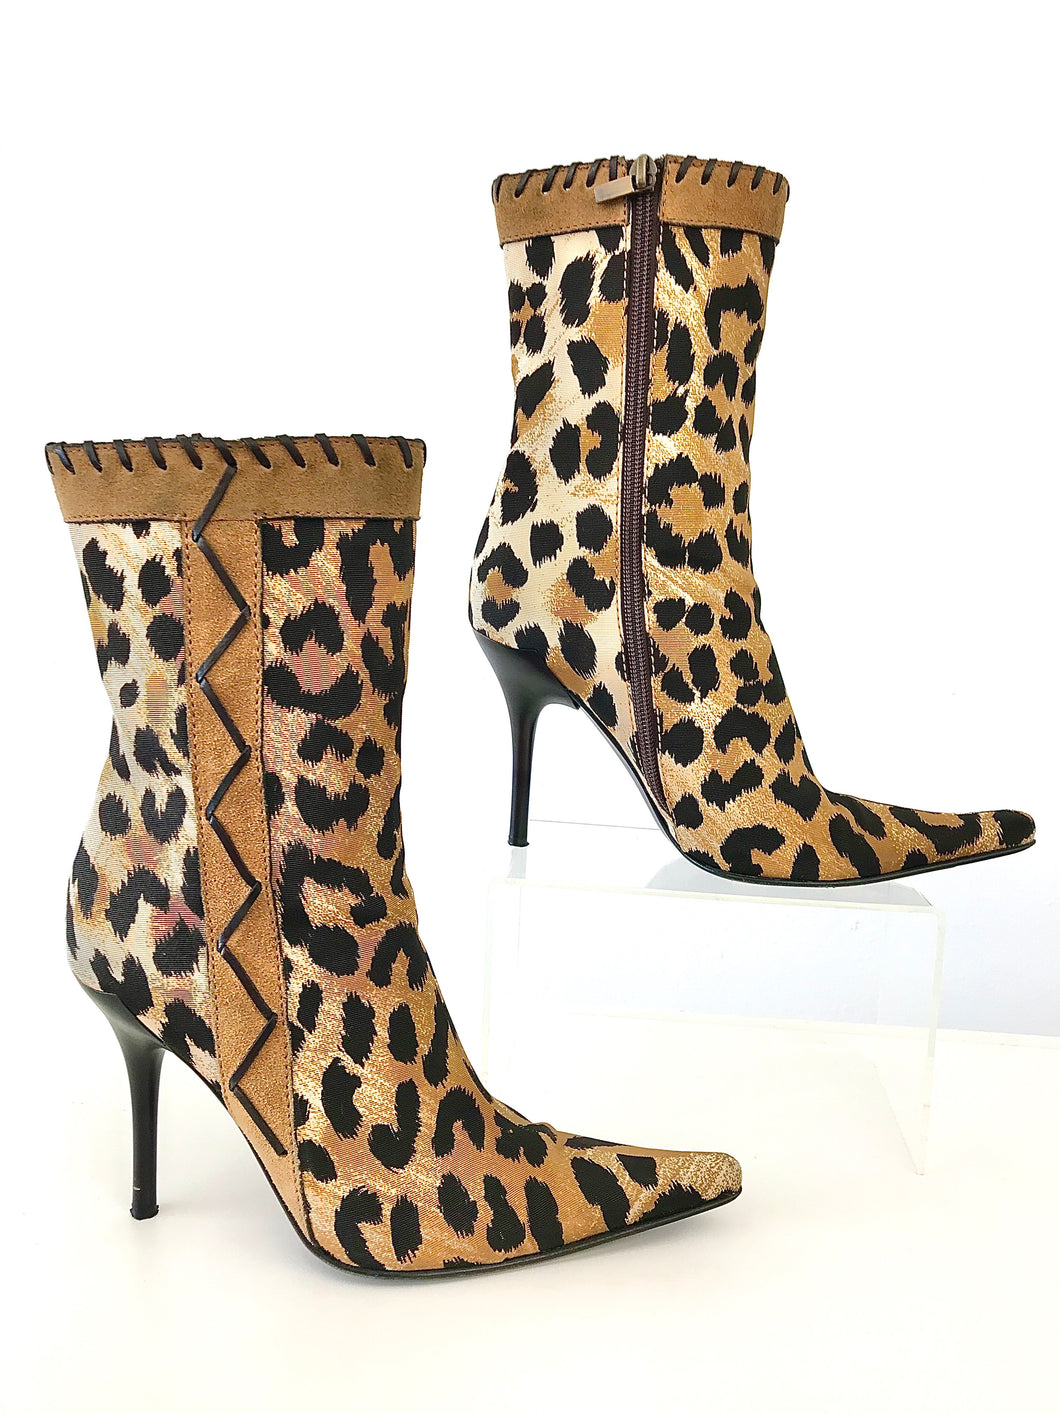 2000's Leopard Print Fabric Stiletto Ankle Boots by Casadei